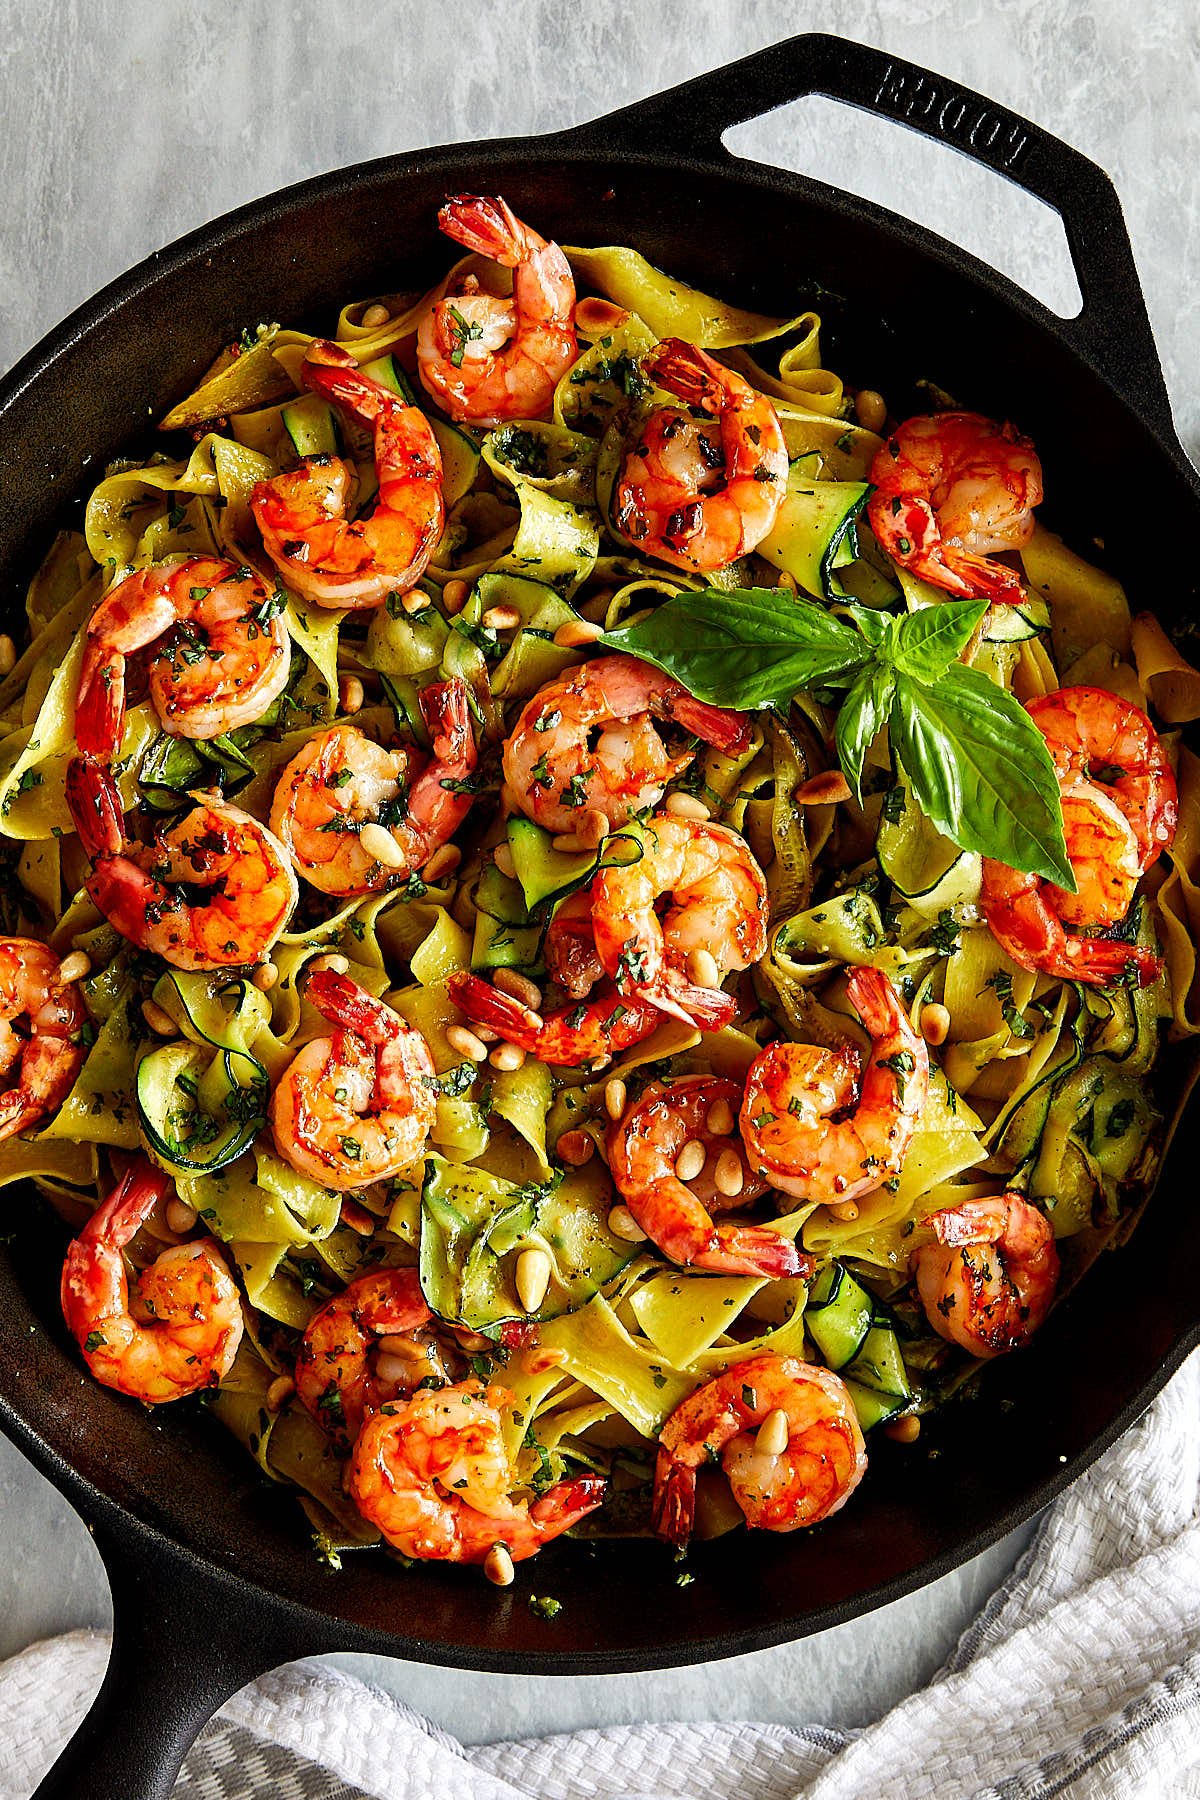 Homemade pesto shrimp pasta made quickly and easily, a great recipe for a busy weekday dinner.   ifoodblogger.com #dinner #dinnerrecipes #easyrecipes #pastarecipes #shrimp #shrimprecipes